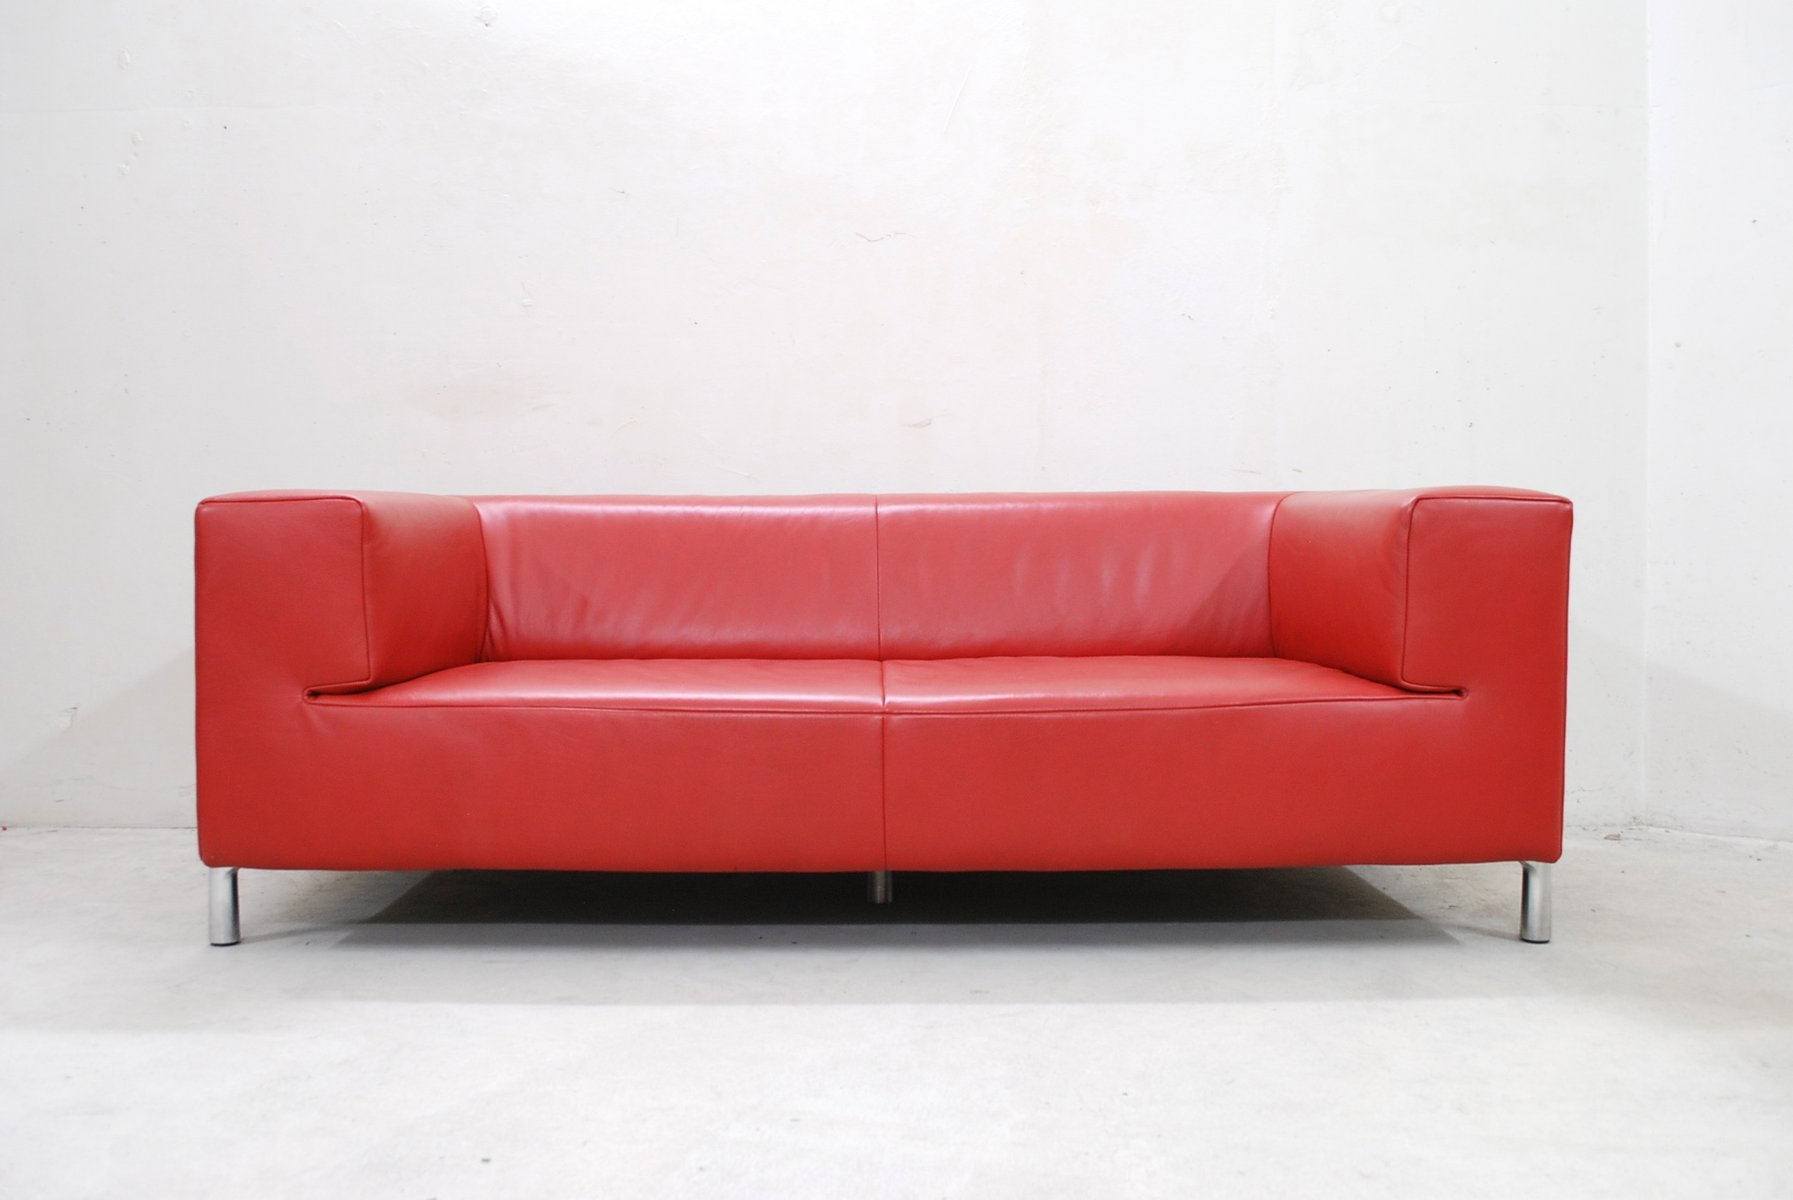 Vintage Red Leather Genesis Sofa From Koinor For Sale At Pamono